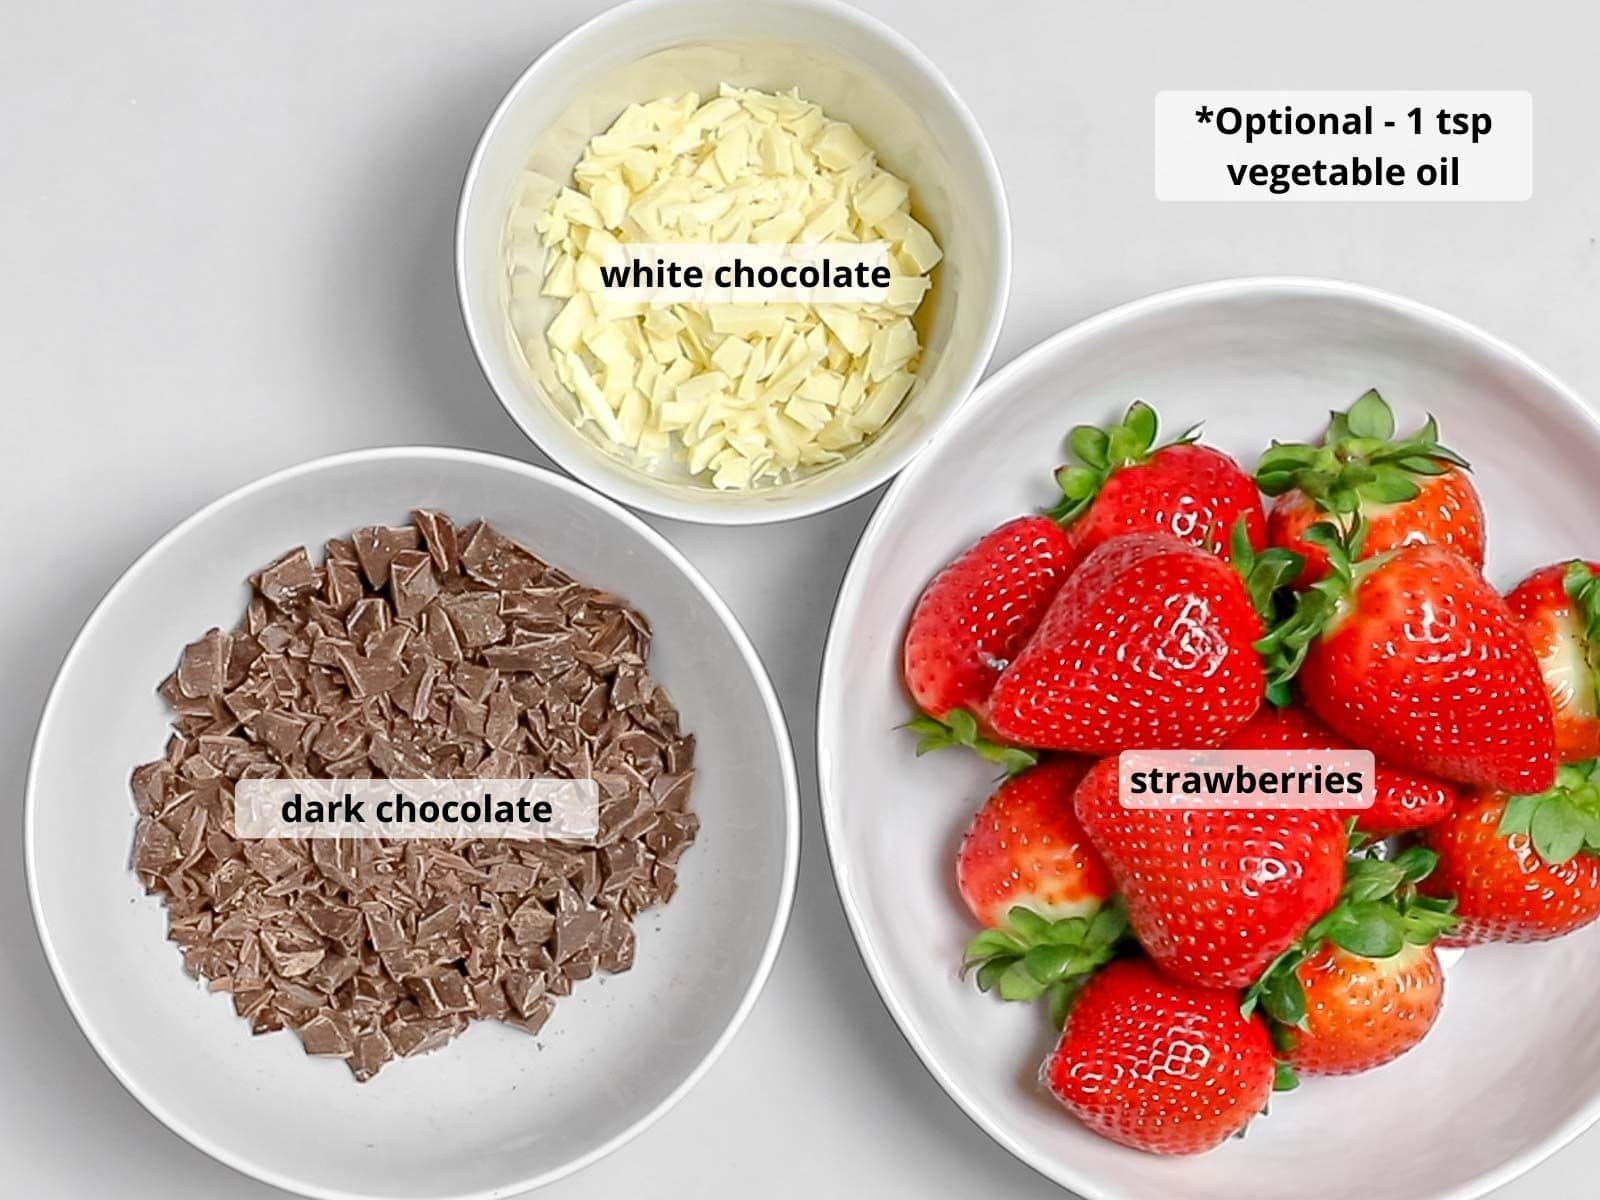 labeled ingredients for chocolate dipped strawberries in white bowls including dark chocolate and white chocolate